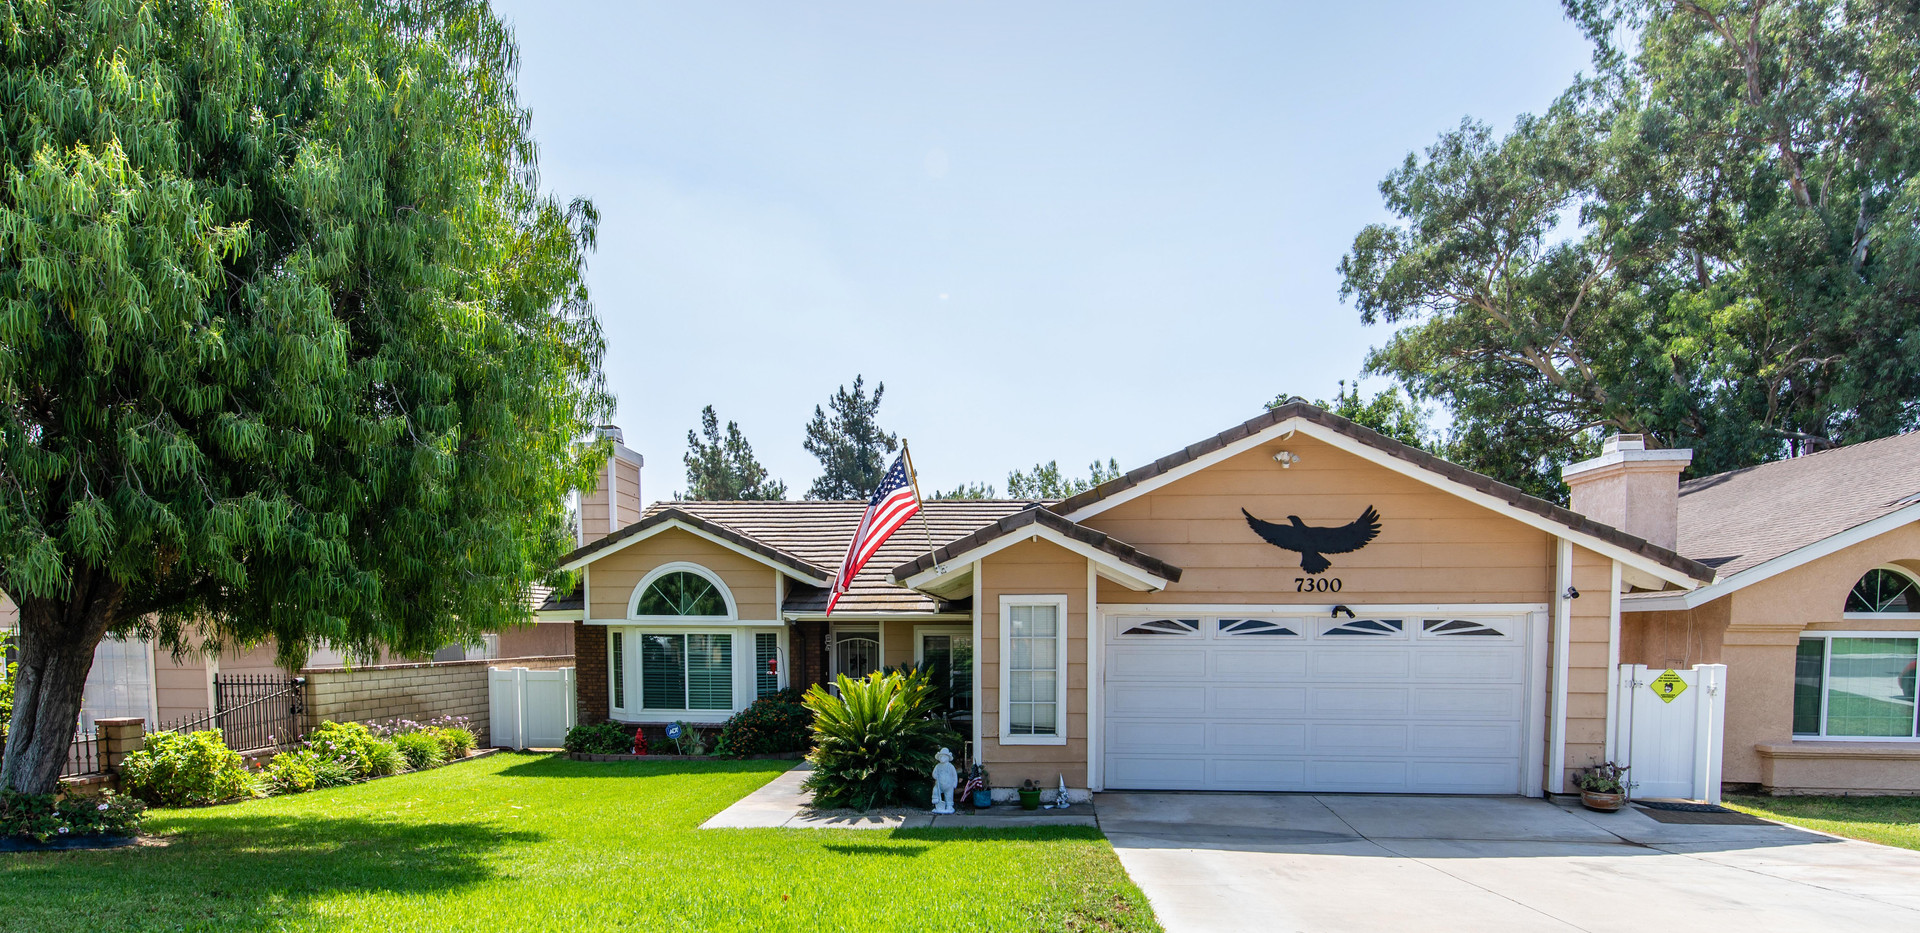 7300 Linares Ave-ext-8.jpg